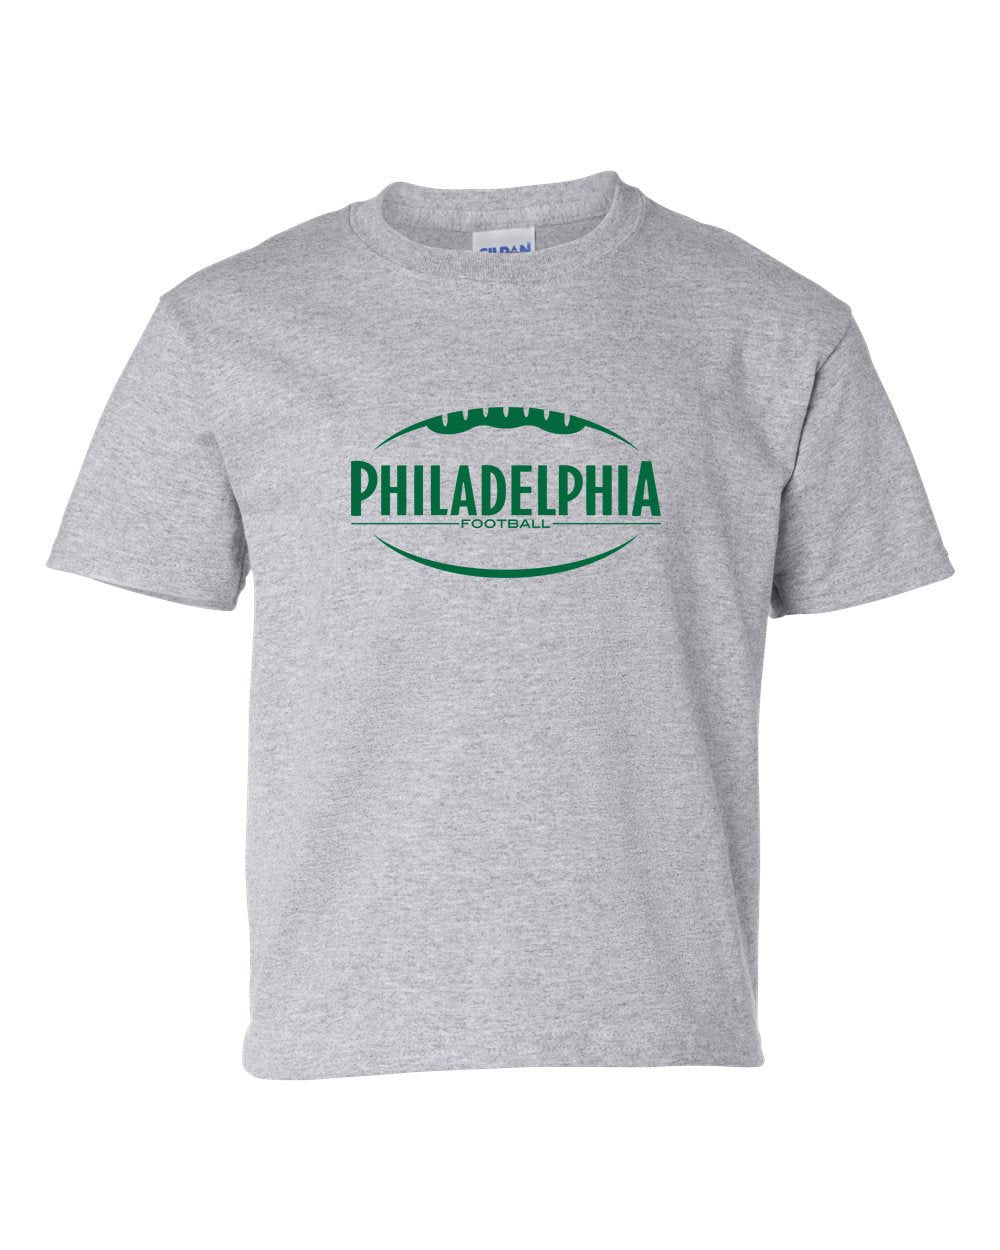 Philadelphia Football KIDS T-Shirt